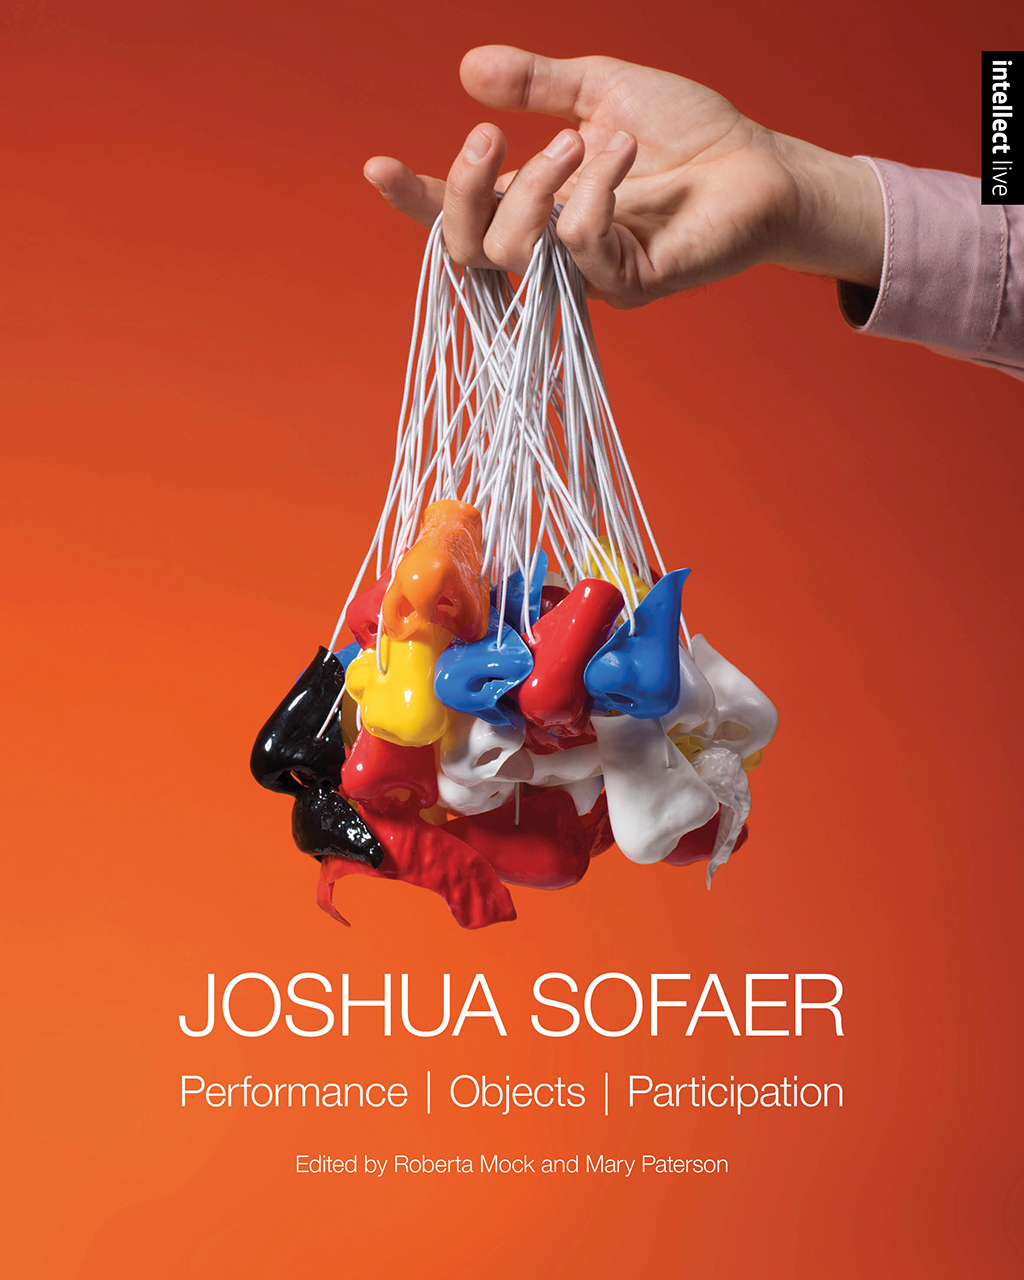 Joshua Sofaer: Performance | Objects | Participation